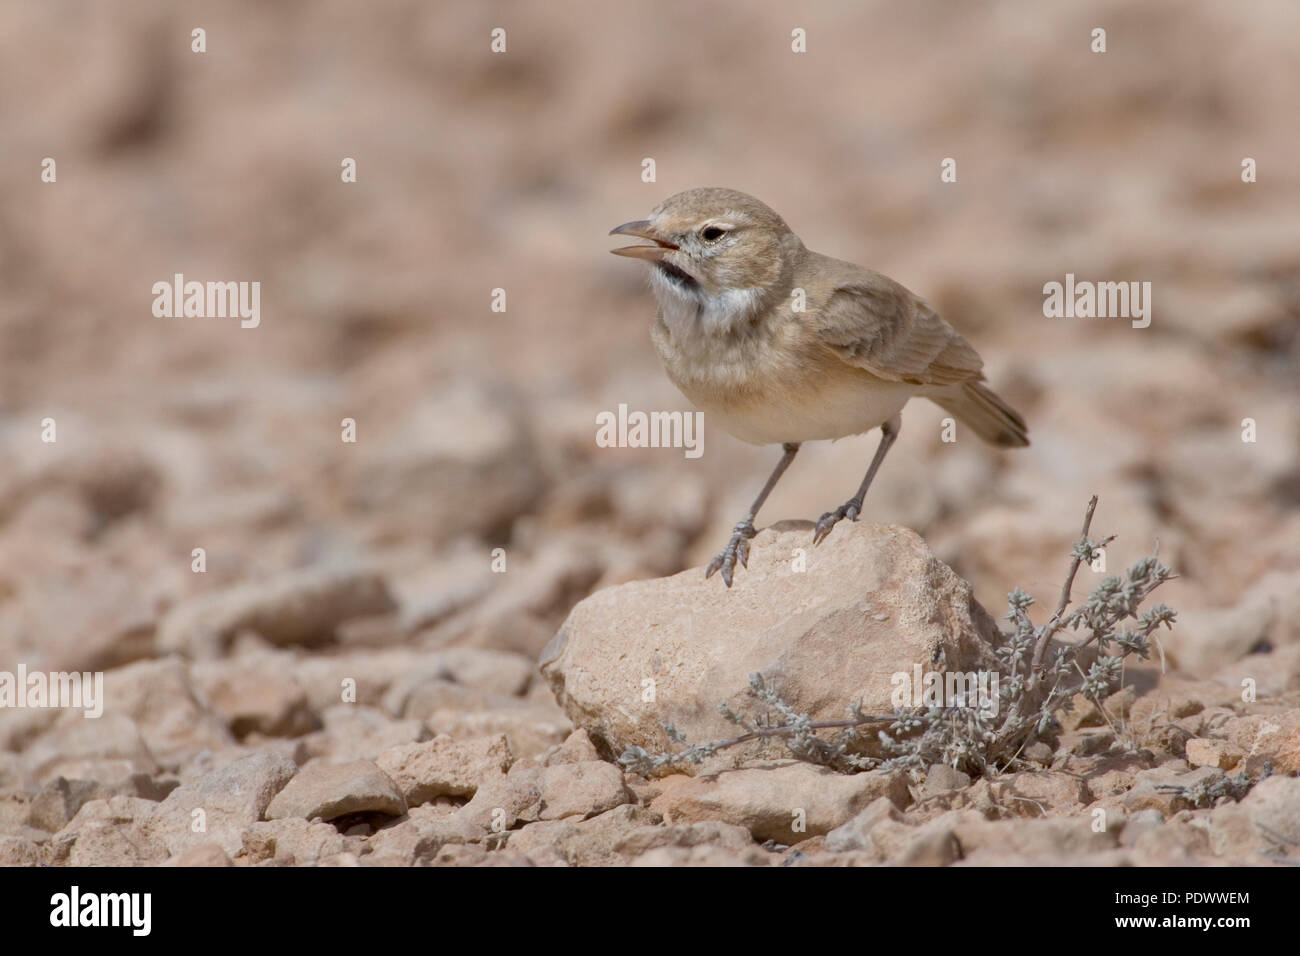 Calling Bar-tailed Desert Lark on a stone, side-view. - Stock Image